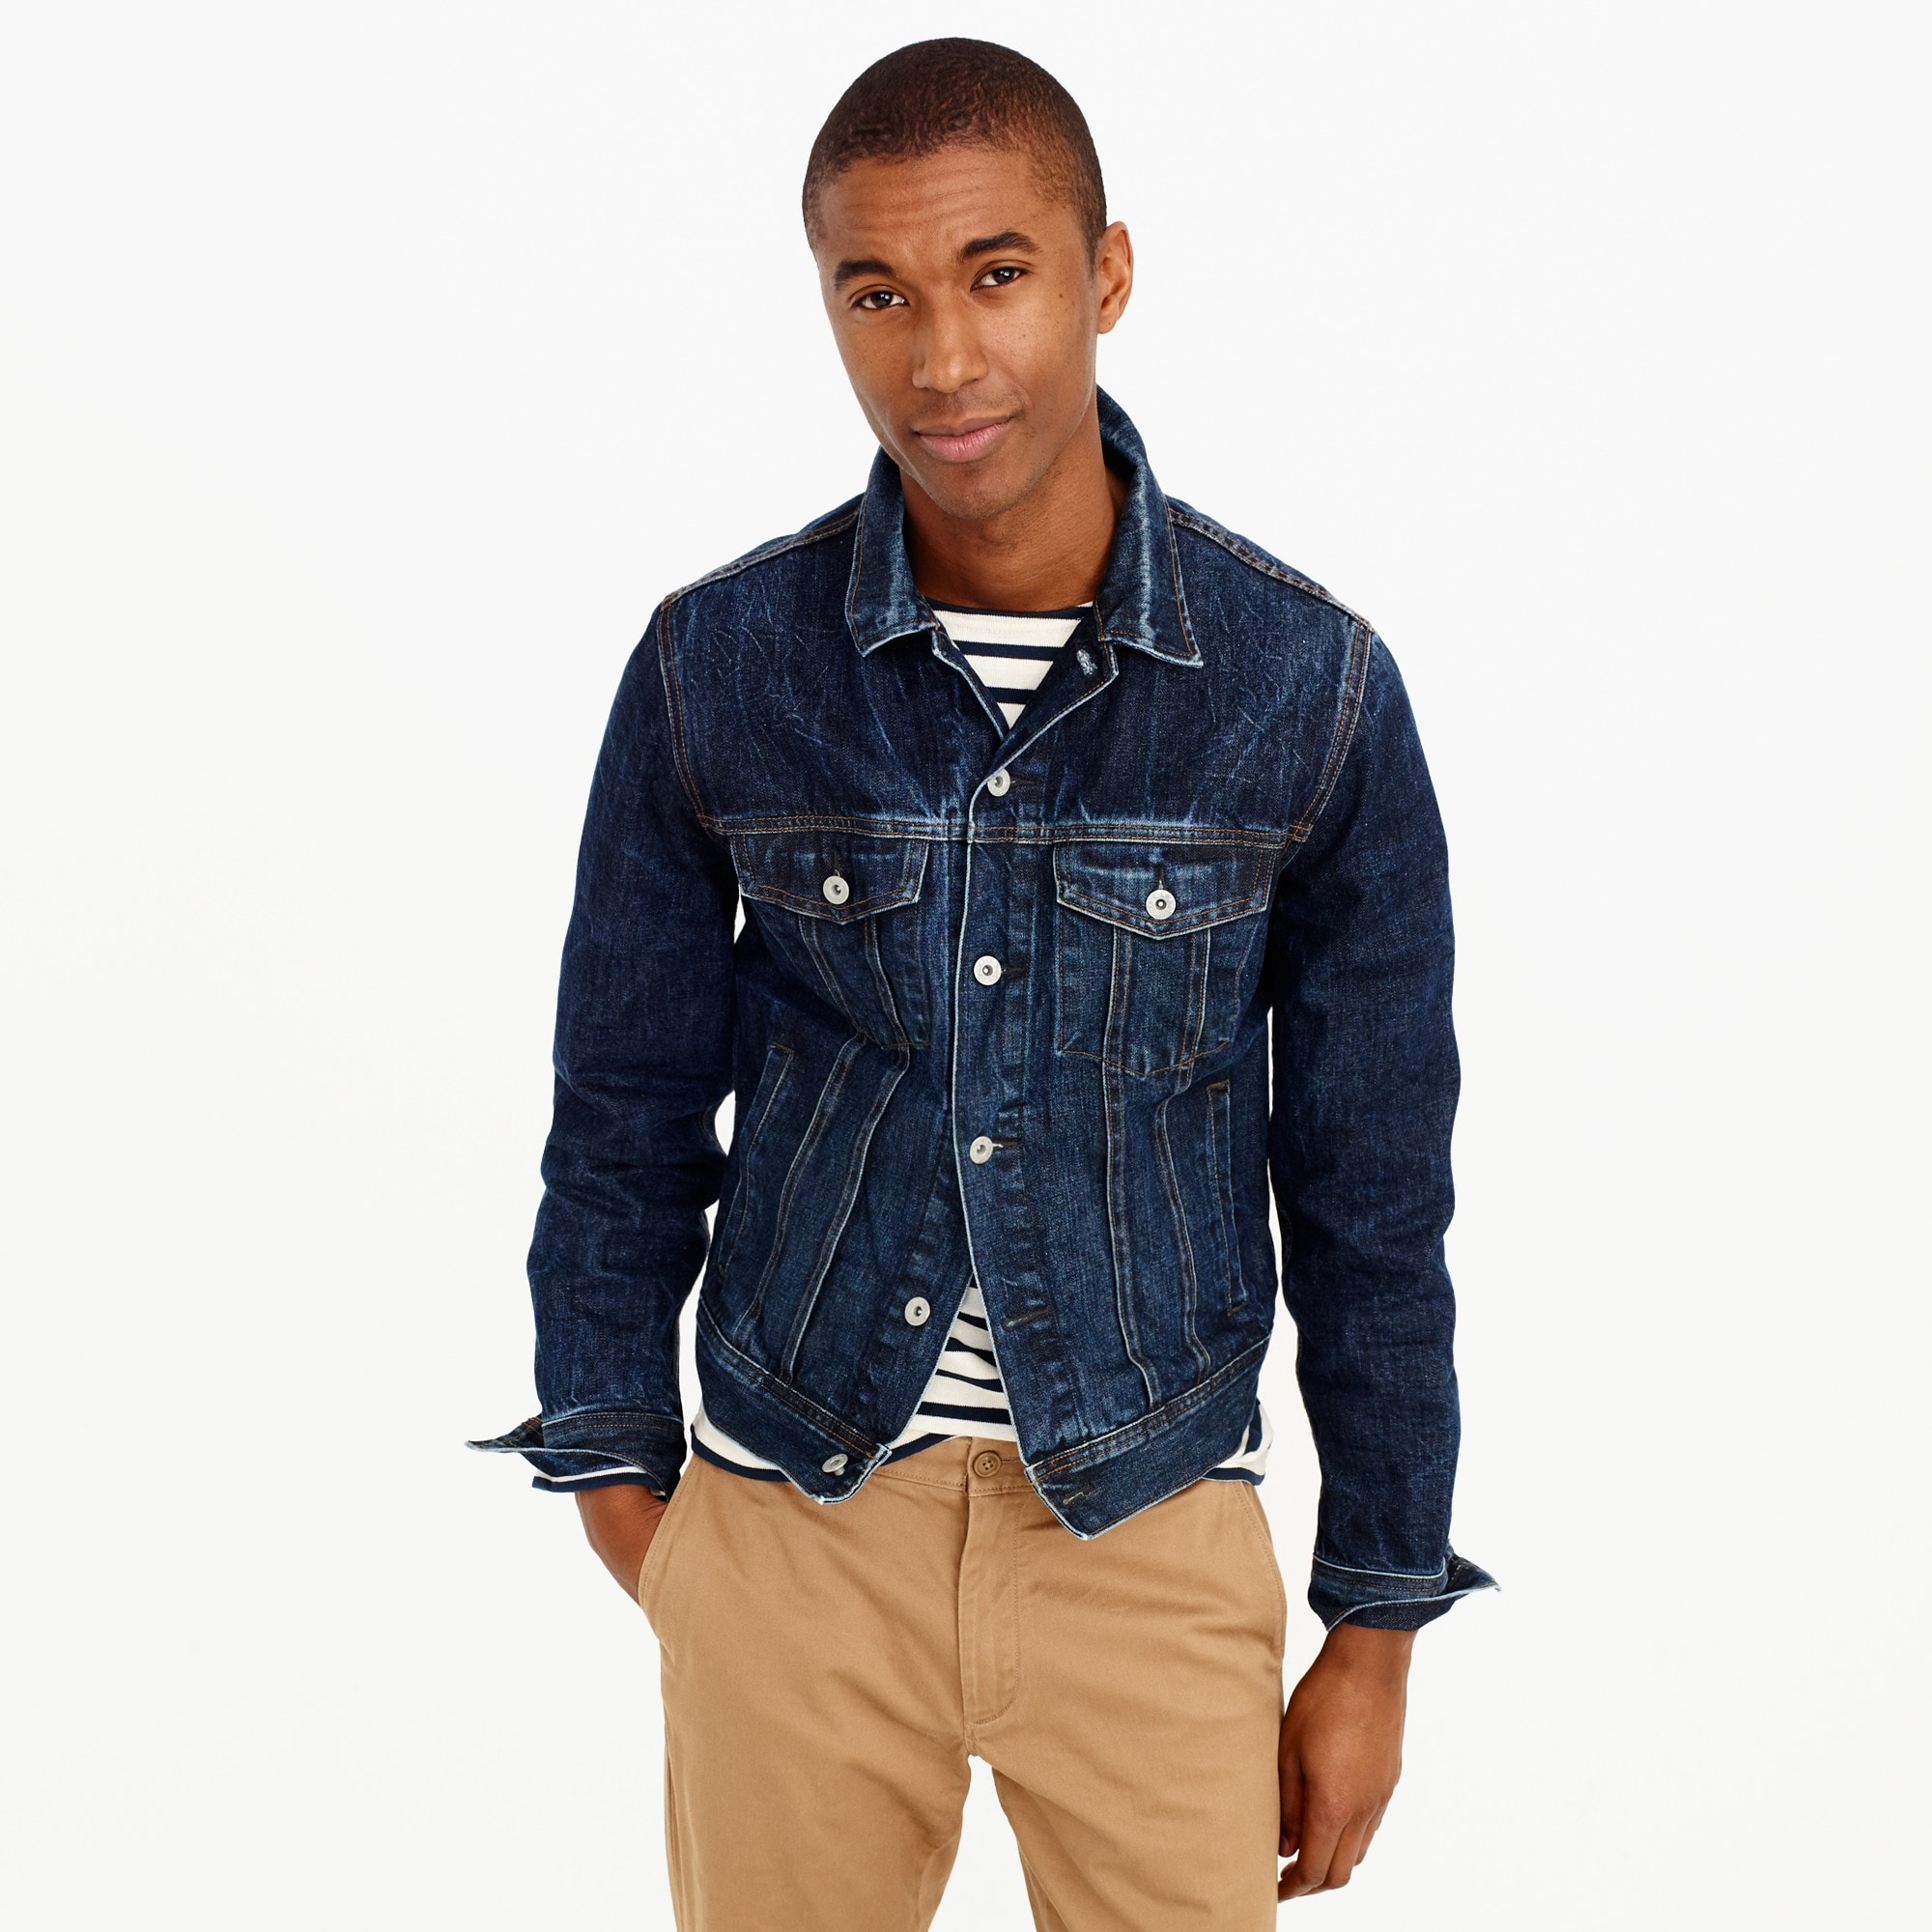 men's denim jacket in walden wash - men's outerwear